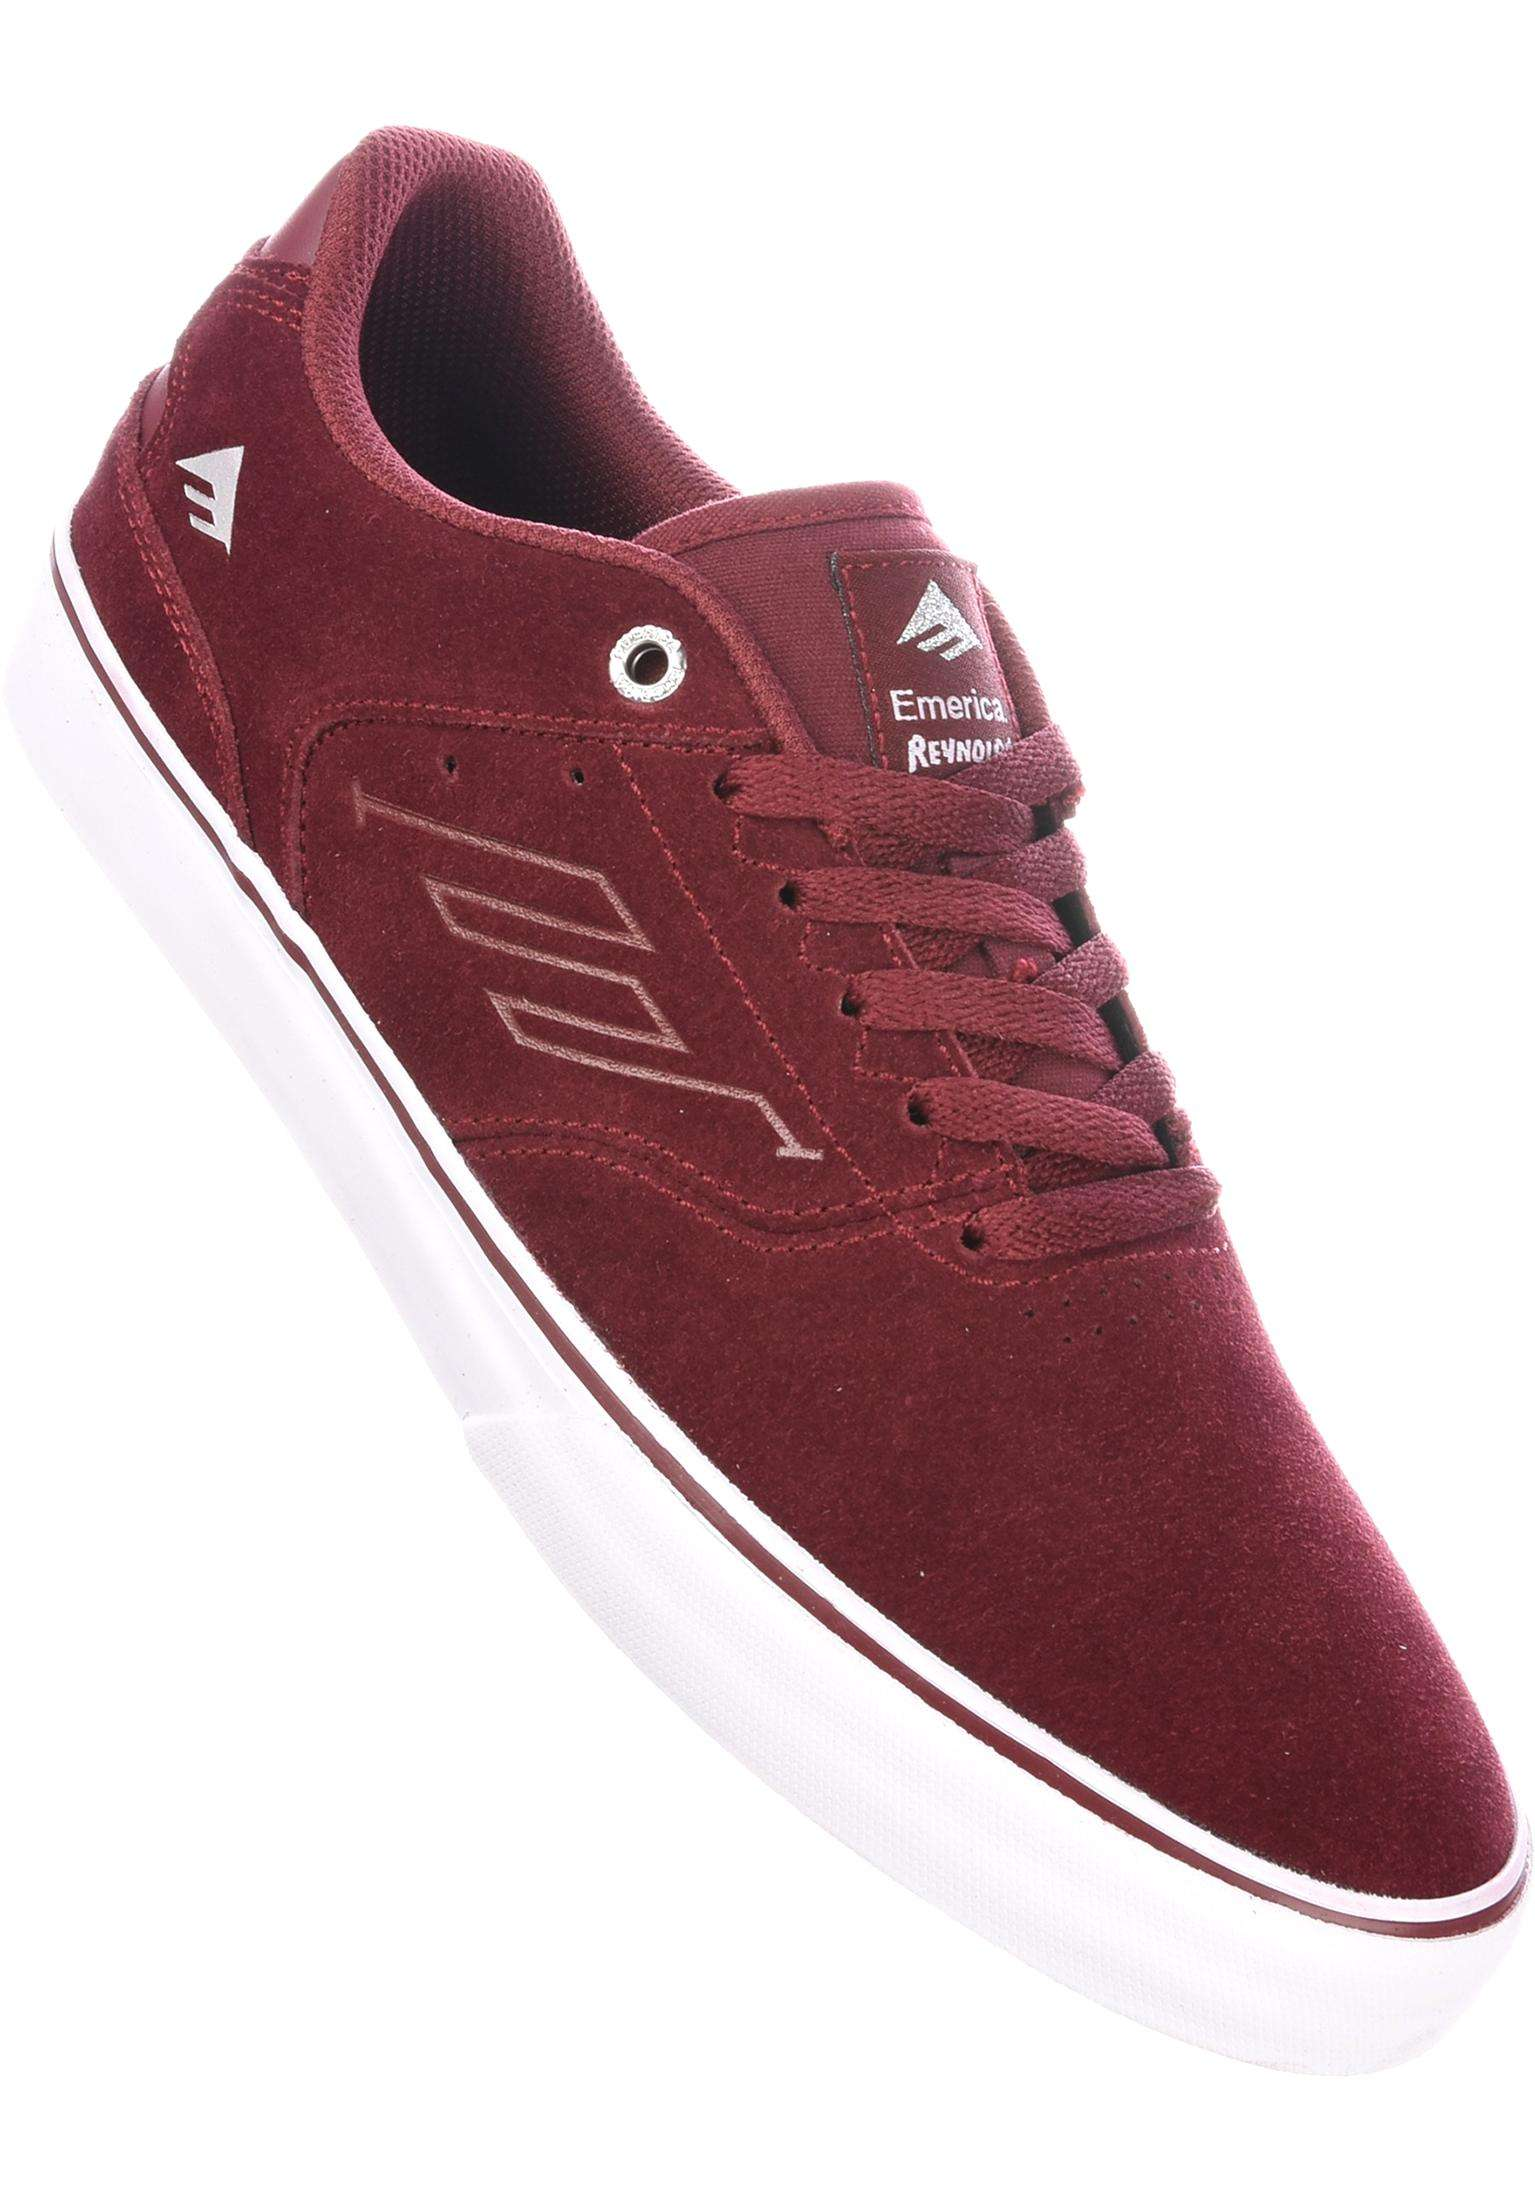 061137146cd Reynolds Low Vulc Emerica All Shoes in red-white-gum for Men